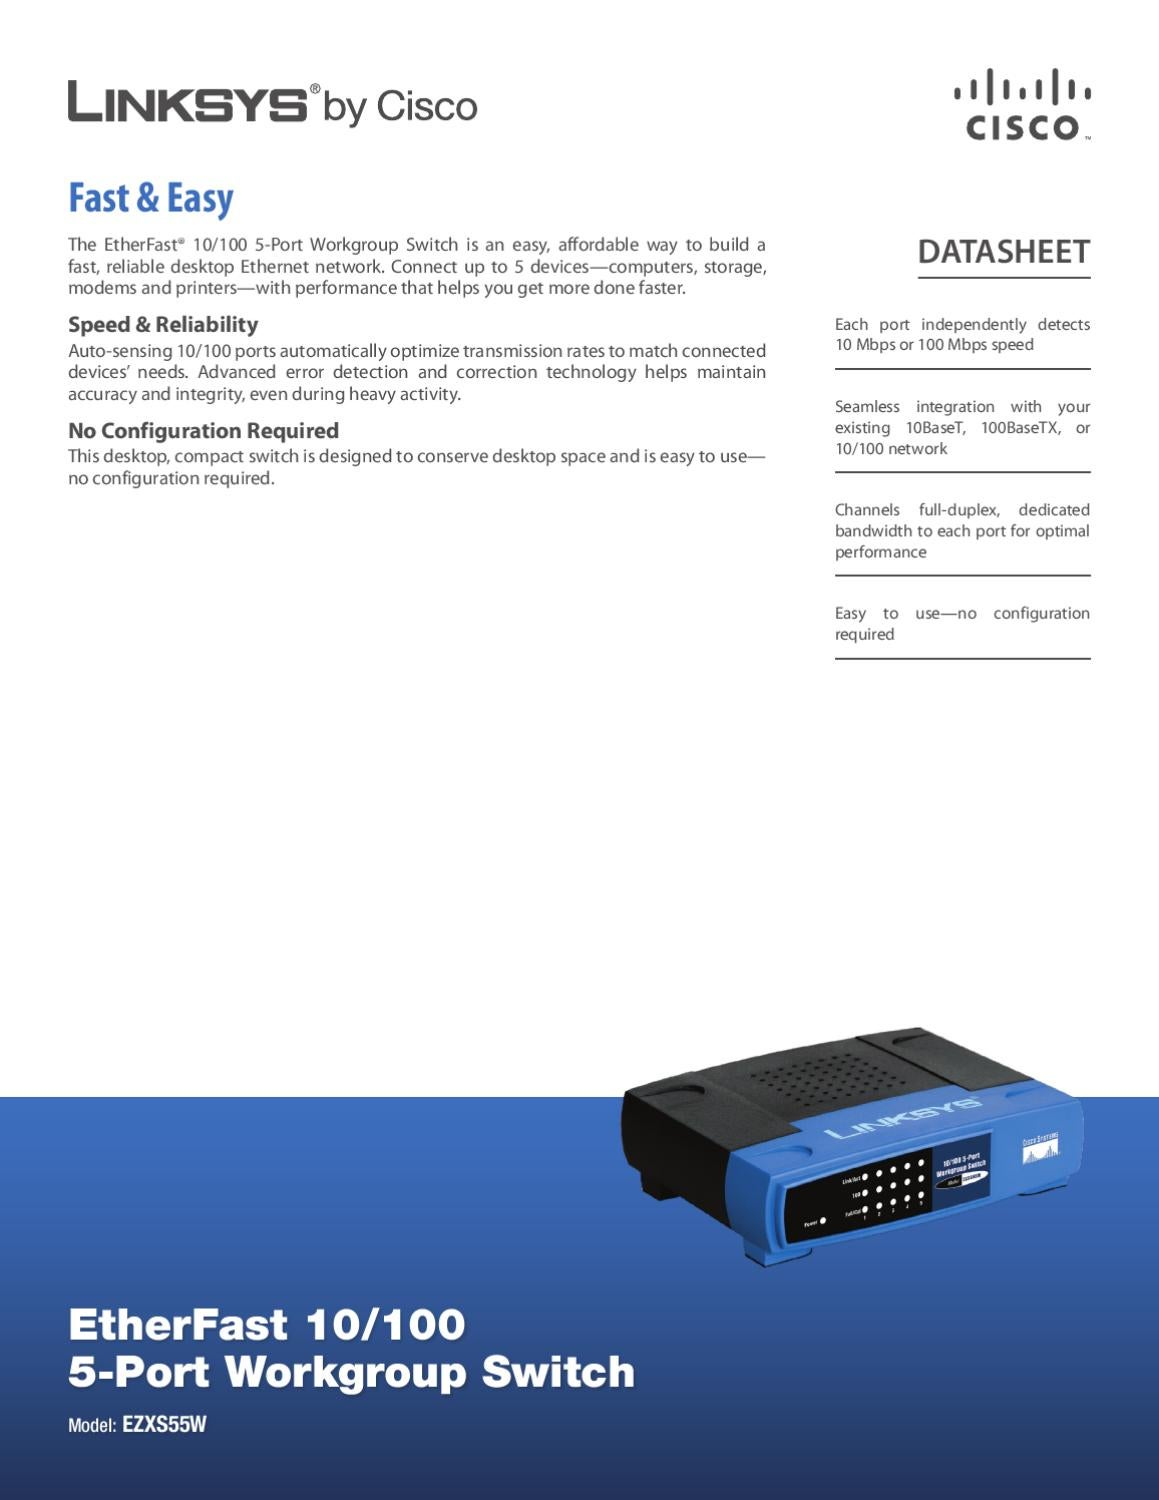 Switch 5 Portas 10/100Mbps Linksys EZXS55W - Manual Sonigate by sonigate -  issuu